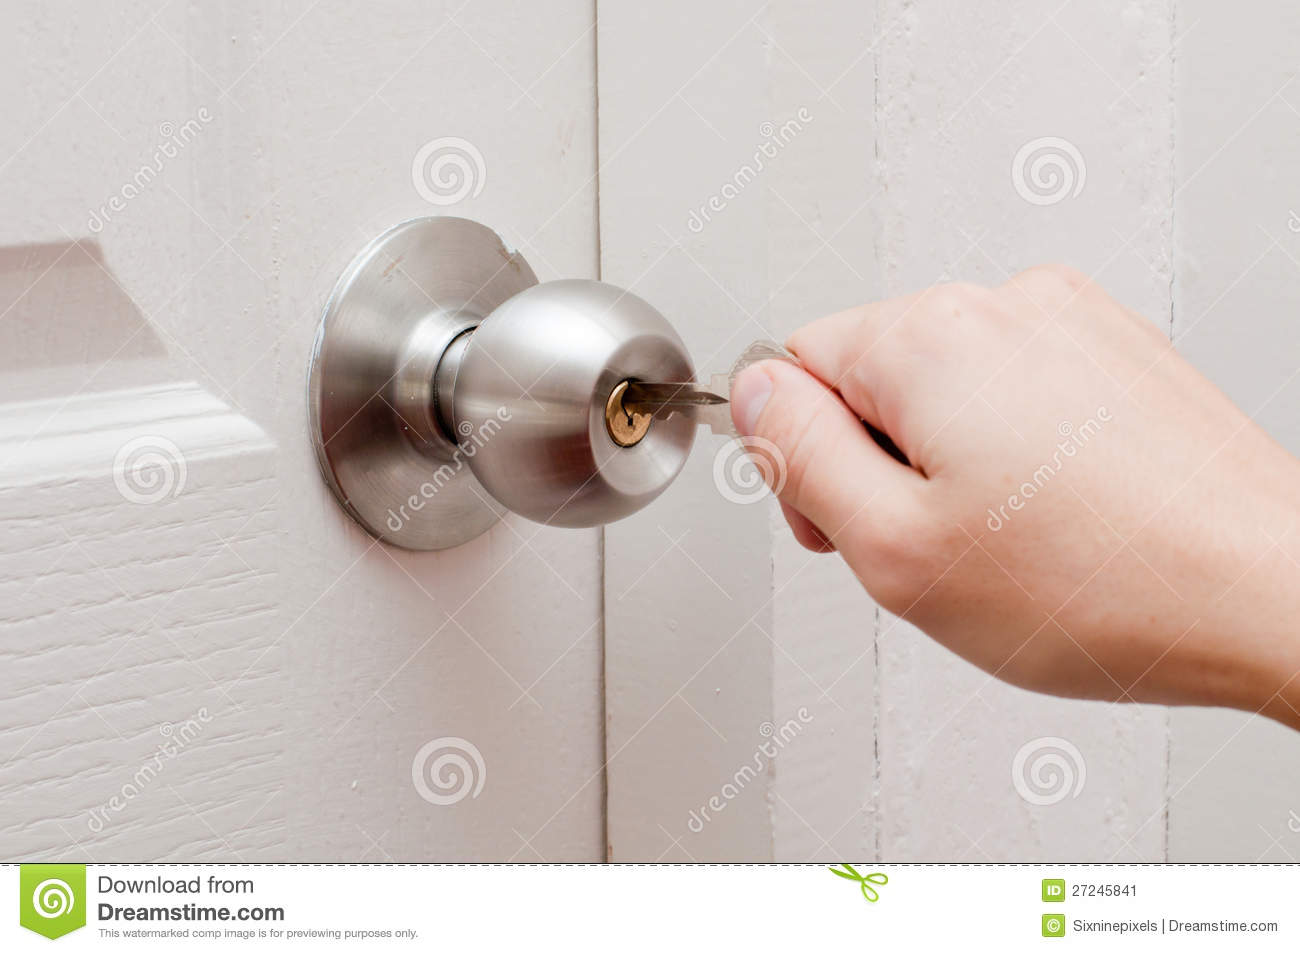 Royalty-Free Stock Photo. Download Hand Opening Door ... & Hand Opening Door By Key Stock Image - Image: 27245841 Pezcame.Com